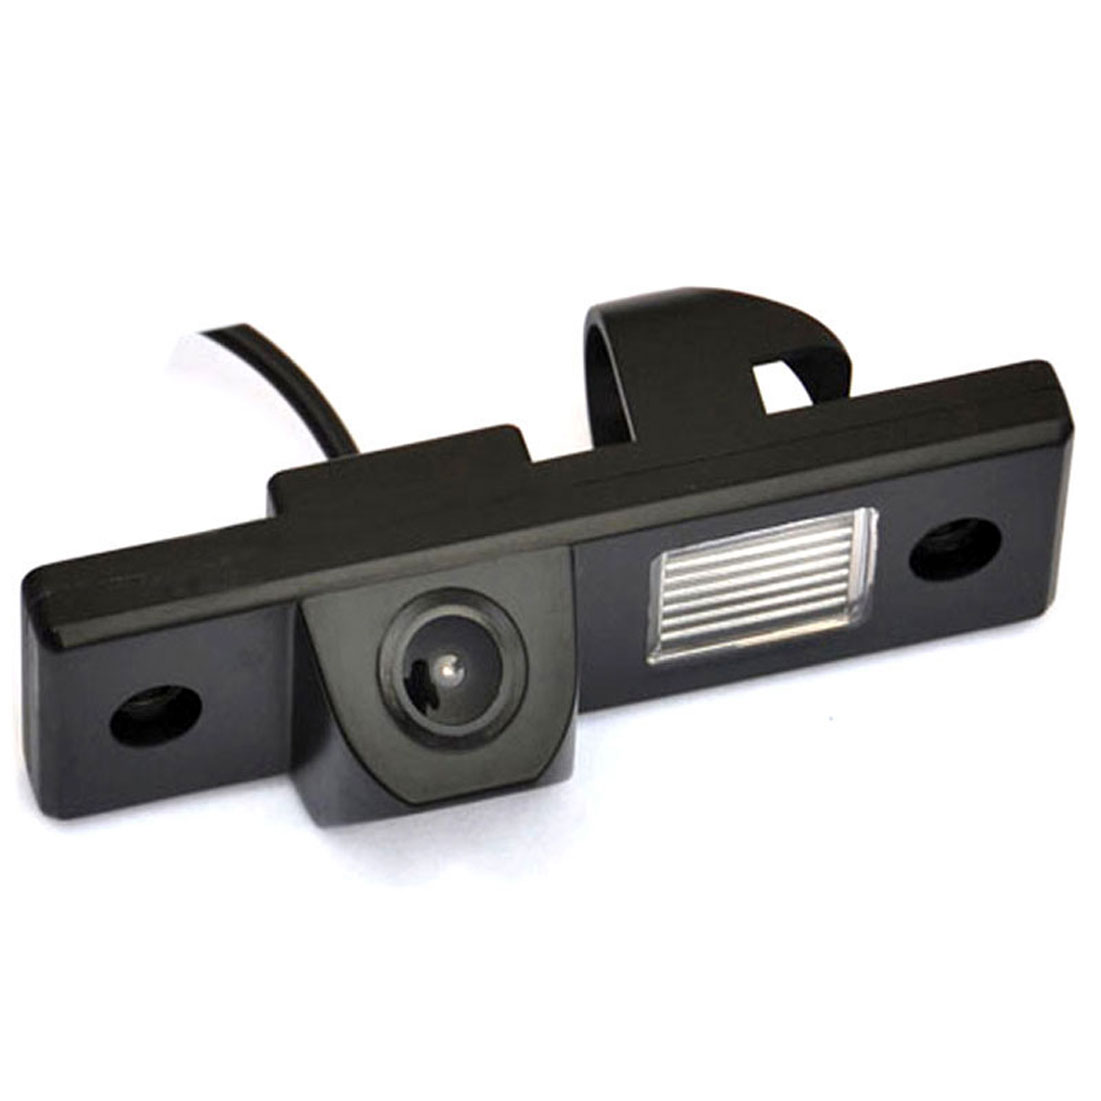 Factory selling Special Car Rear View Reverse backup Camera rearview parking For CHEVROLET EPICA/LOVA/AVEO/CAPTIVA/CRUZE/LACETTI<br><br>Aliexpress